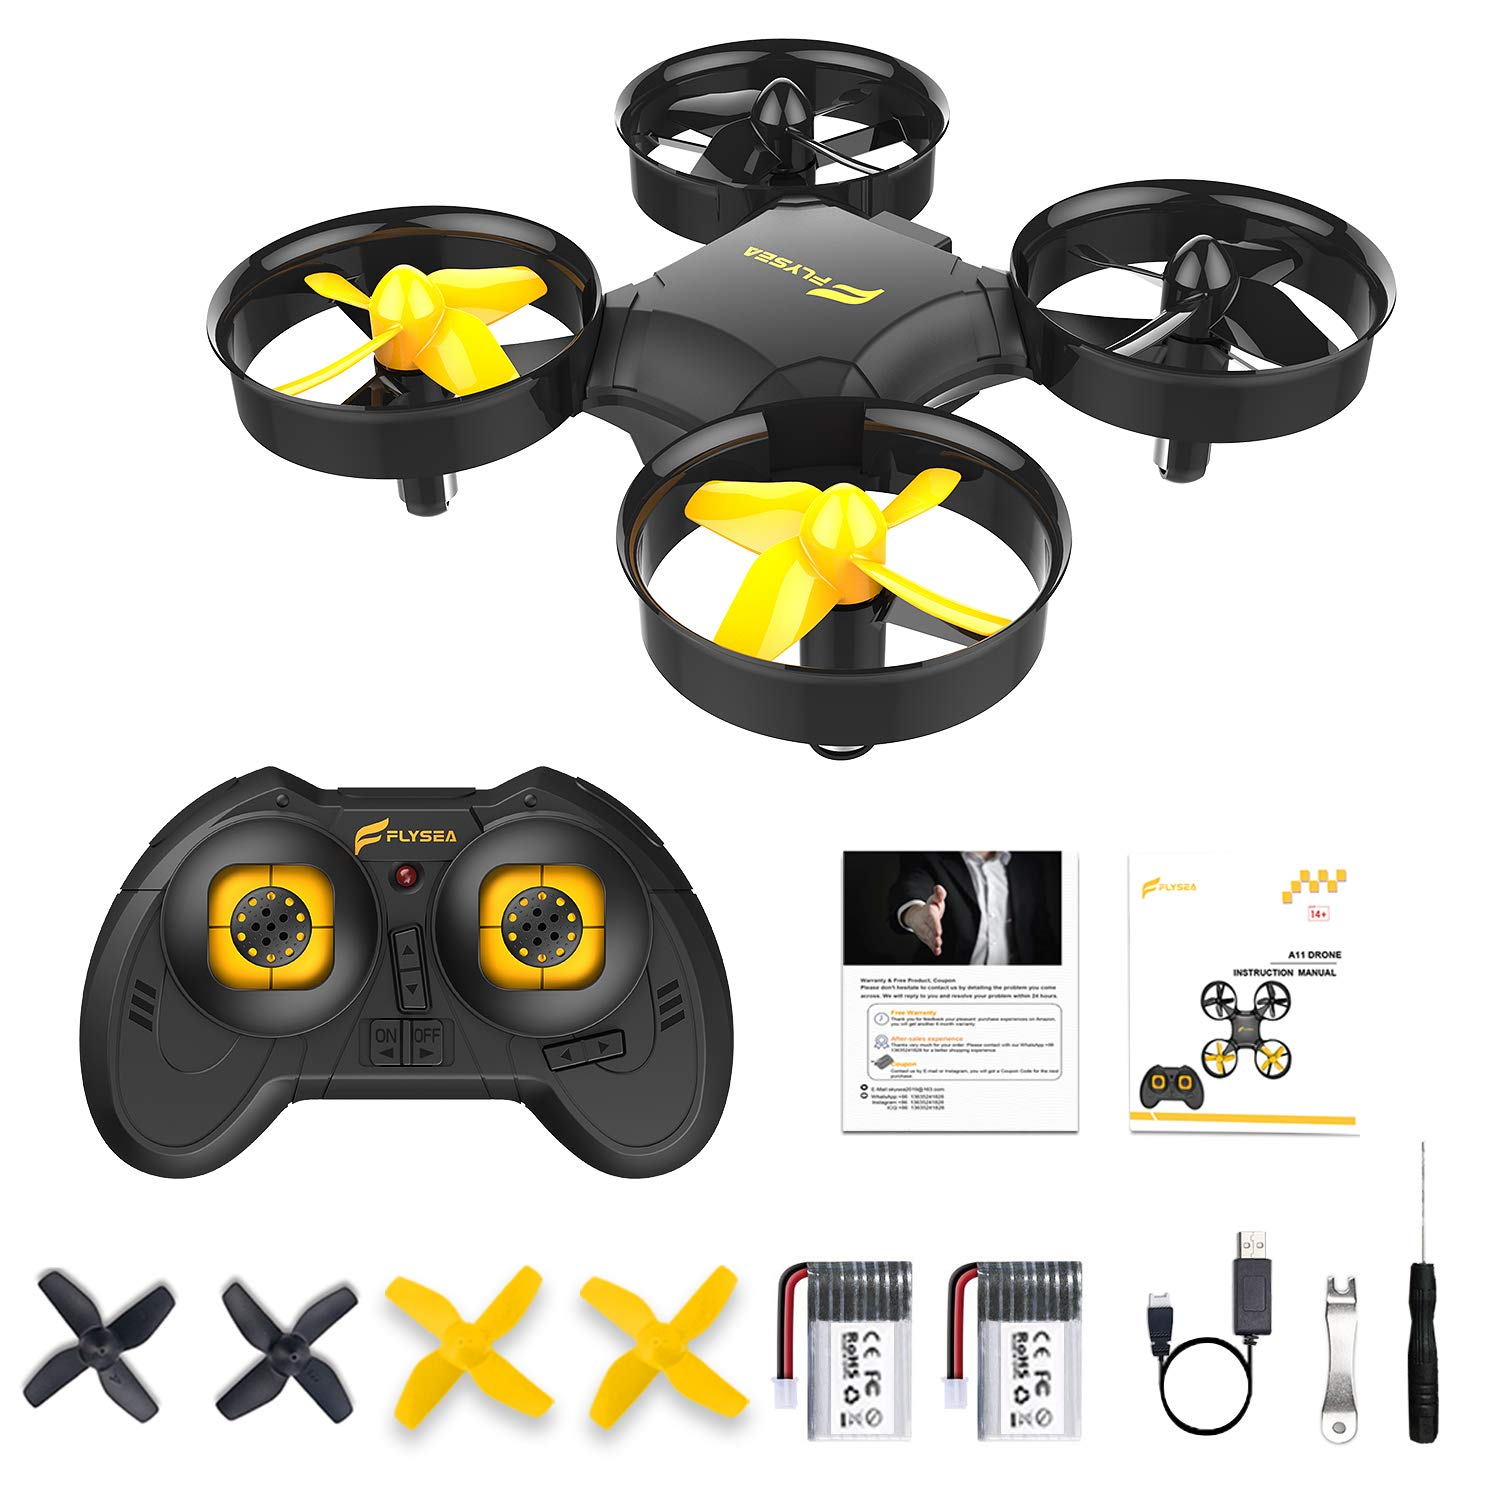 Flysea A11 Mini Drone for Kids/Beginners, RC Nano Quadcopter for Adult with w/Altitude Hold, 3D Flip, Headless Mode, 2 Batteries, Great Gift/Toys for Boys and Girls, Black